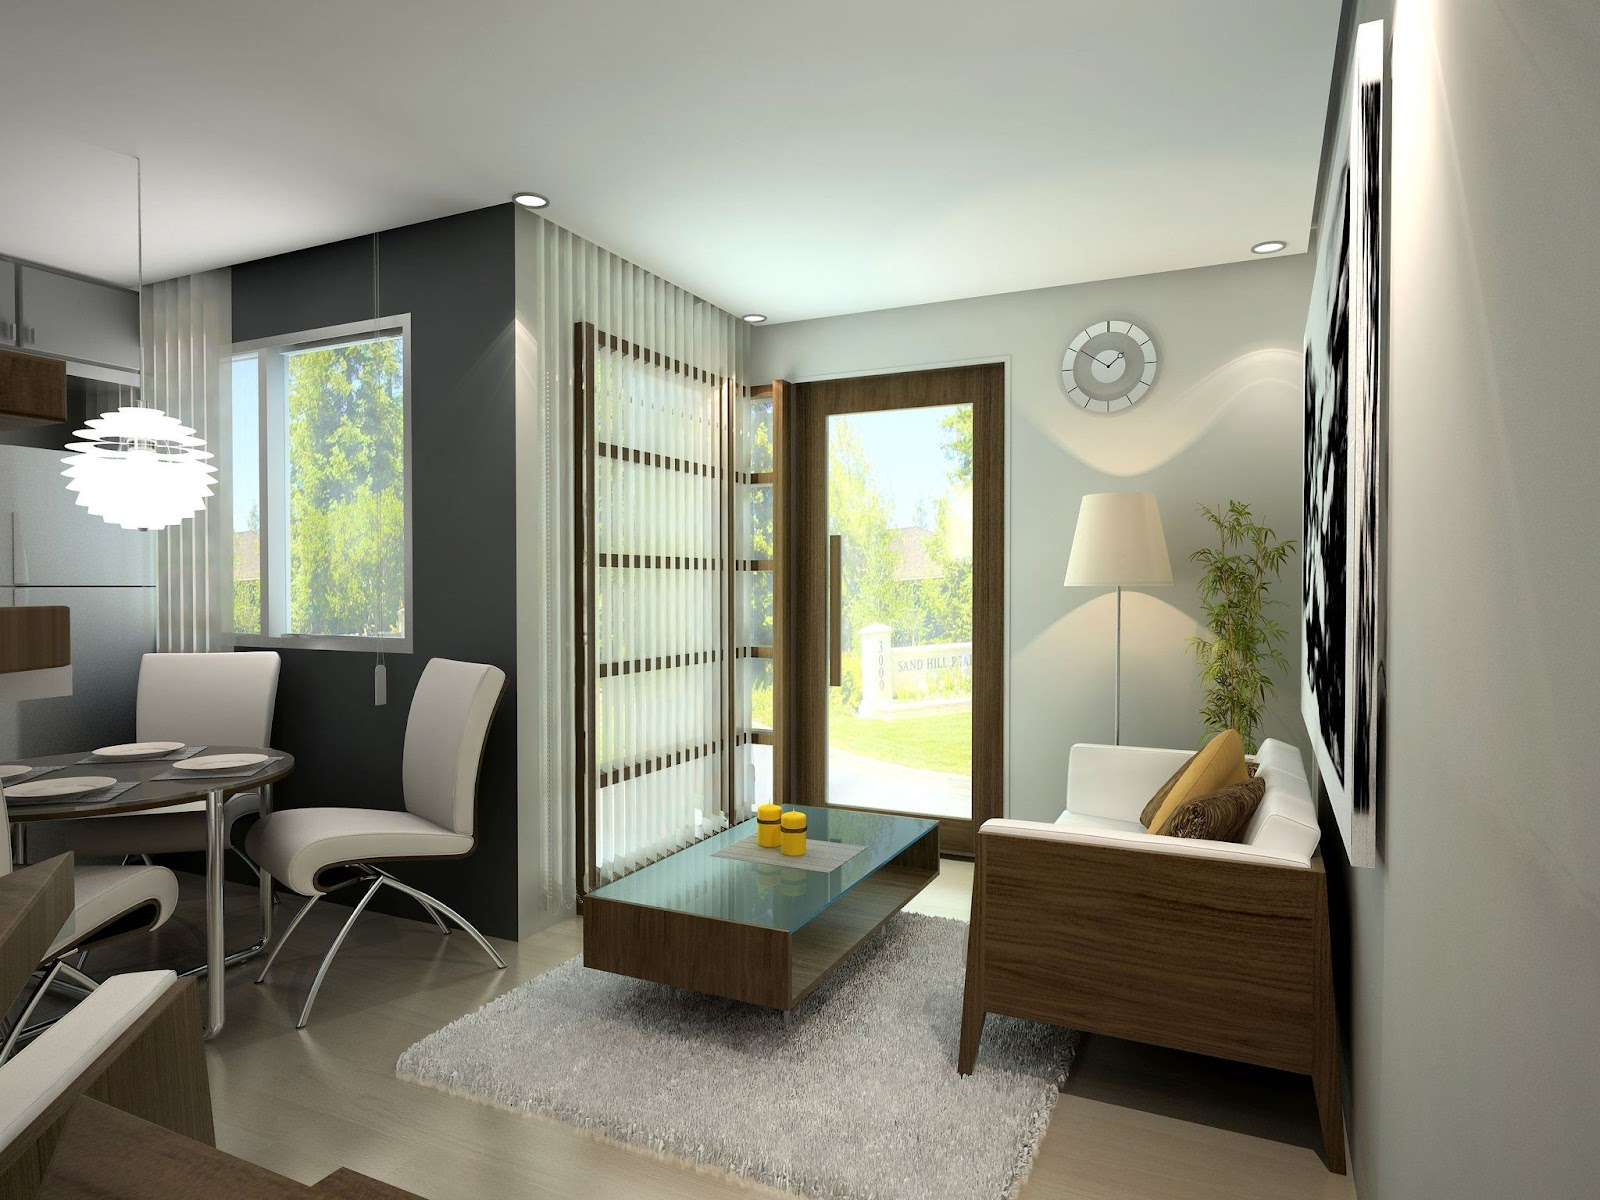 Design first homes